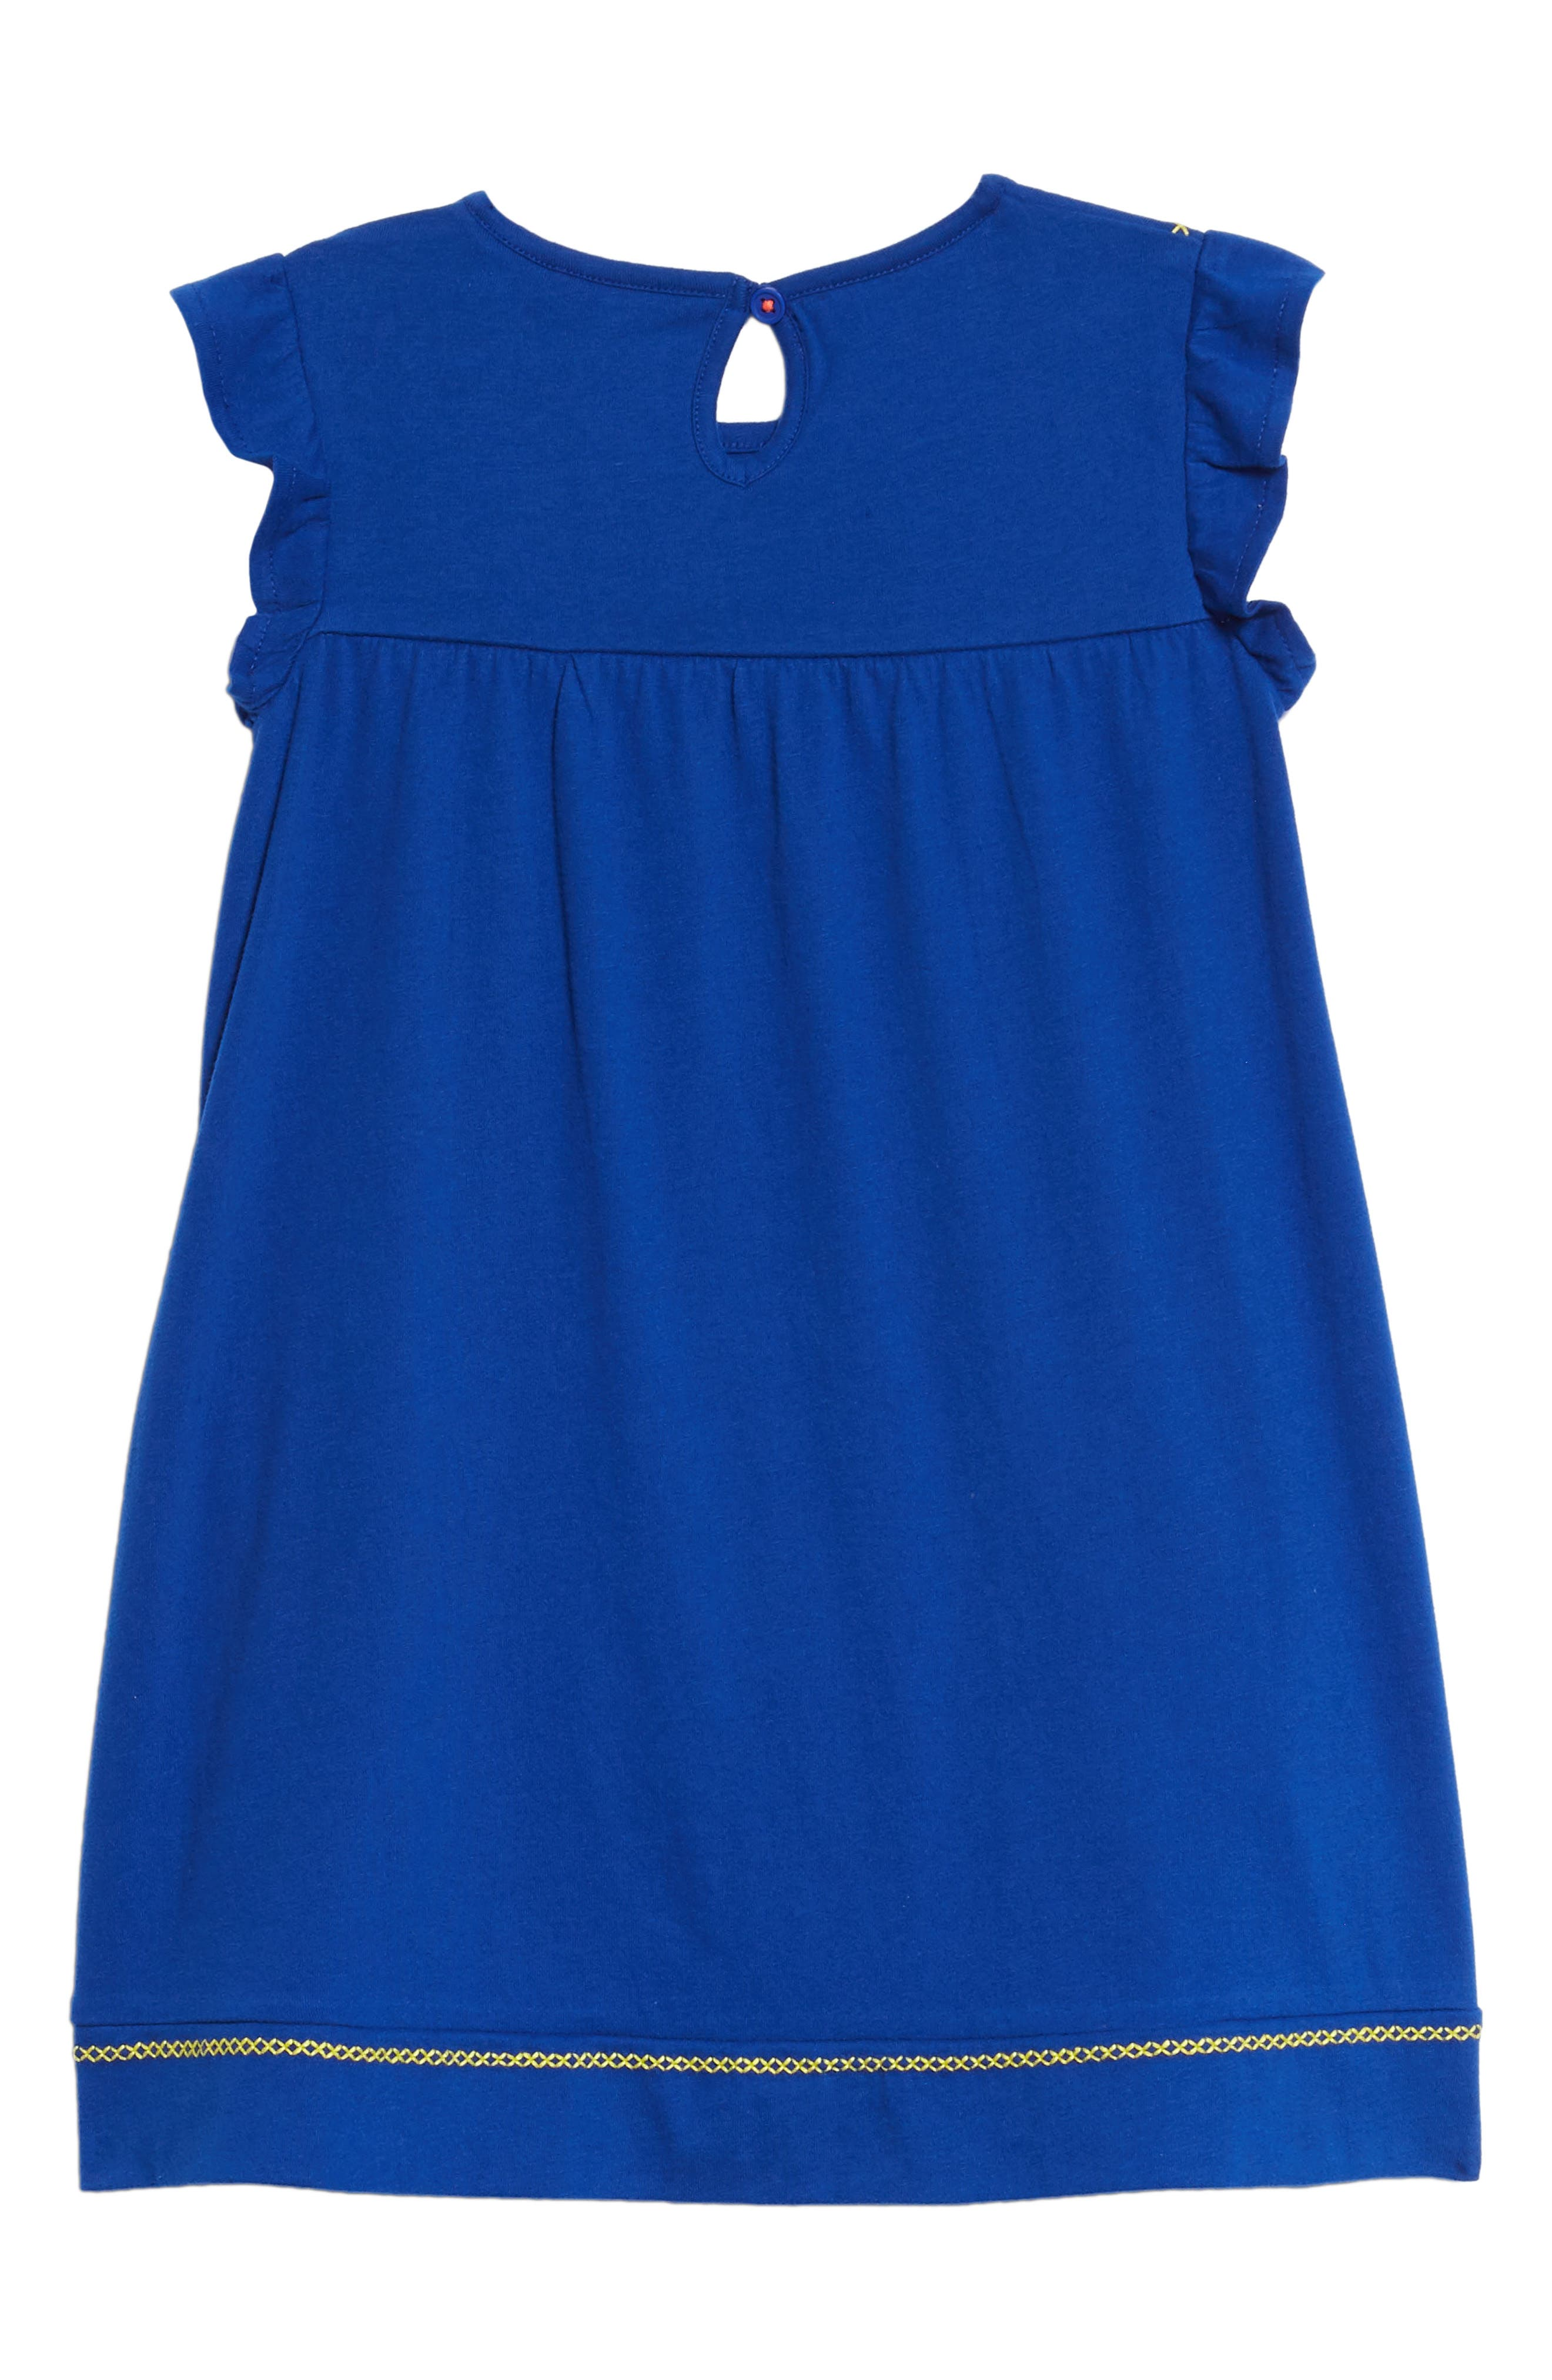 Embroidered Jersey Dress,                             Alternate thumbnail 3, color,                             Orion Blue